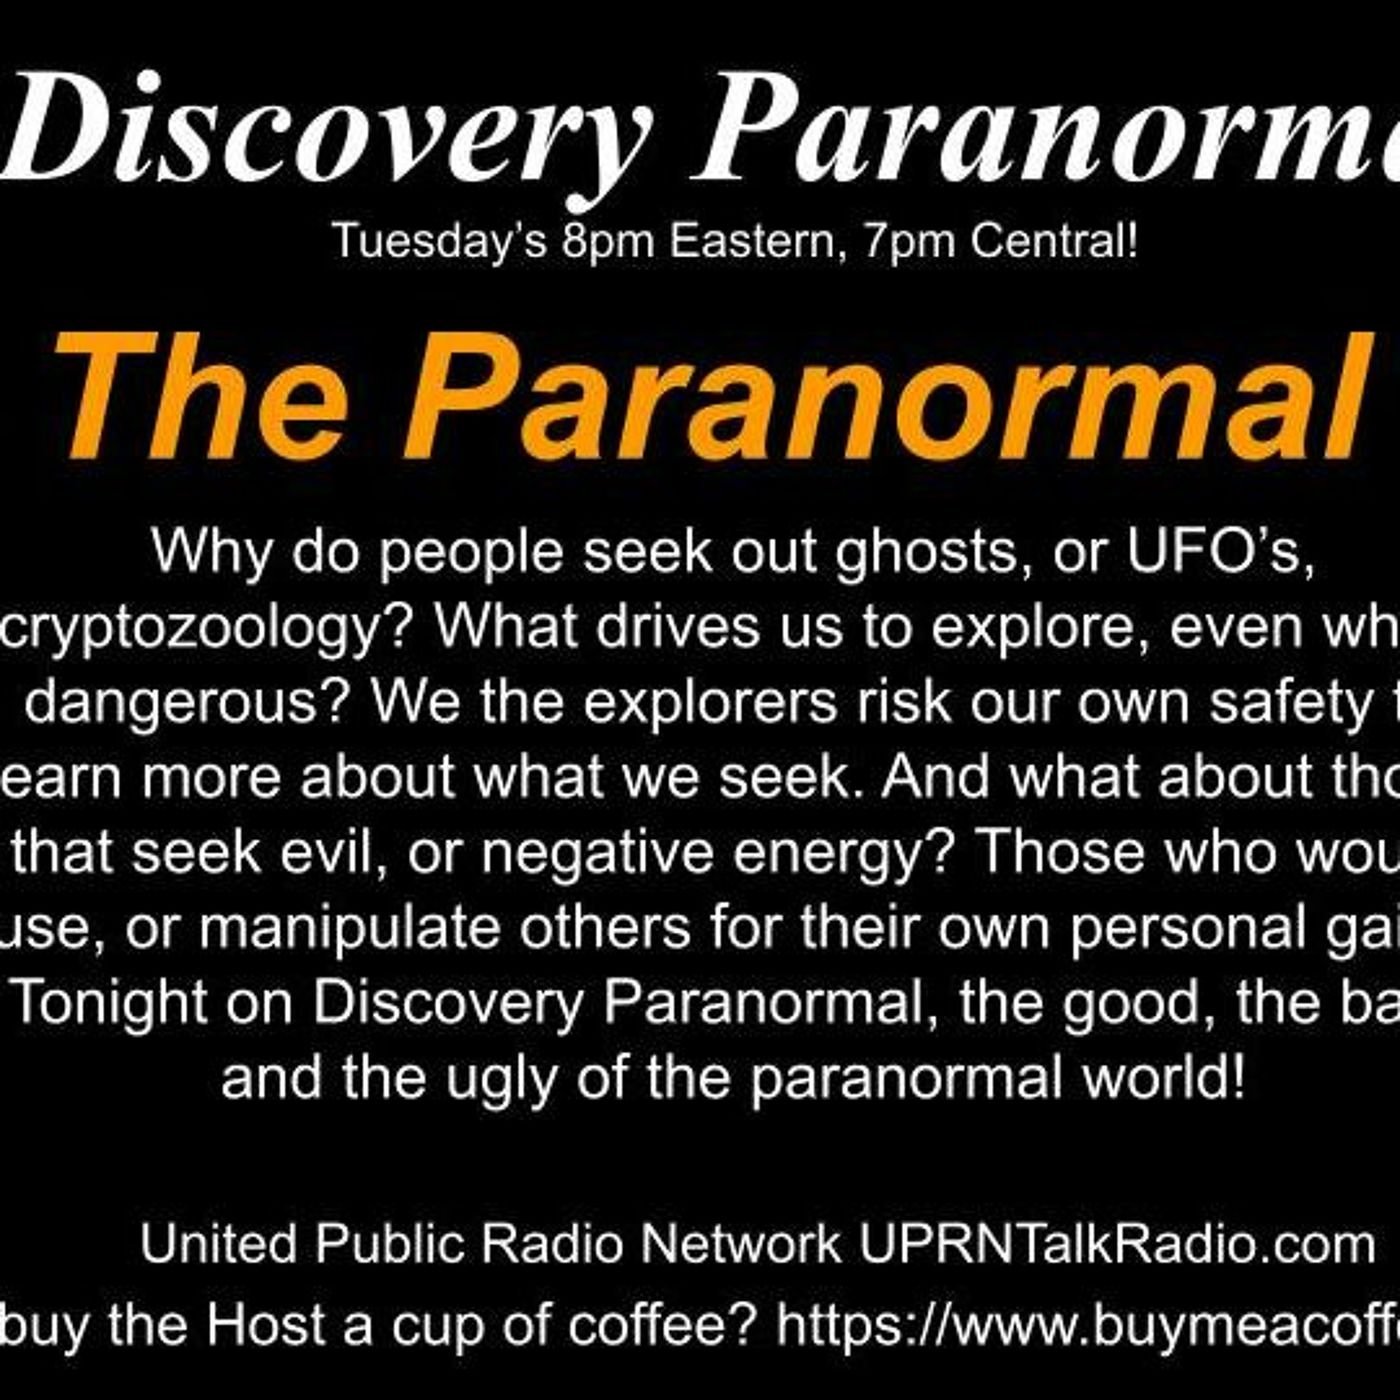 Discovery Paranormal w/ Michael Angley 09 21 2021